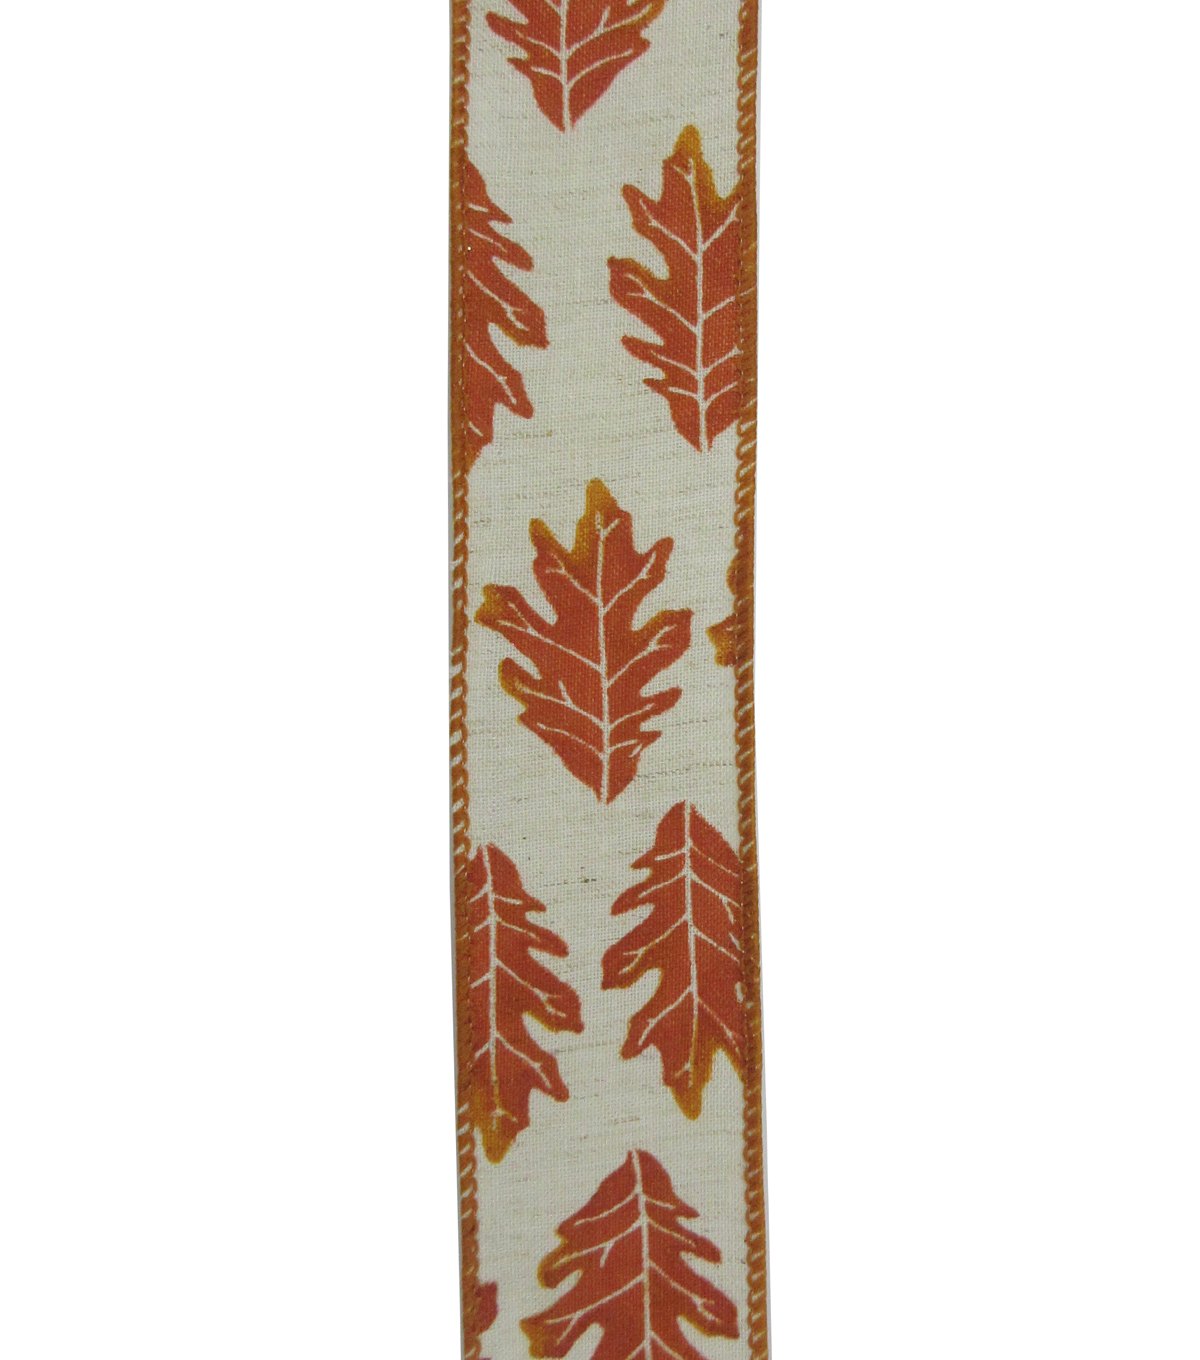 Simply Autumn Ribbon 1.5\u0027\u0027x12\u0027-Orange Leaf on Ivory